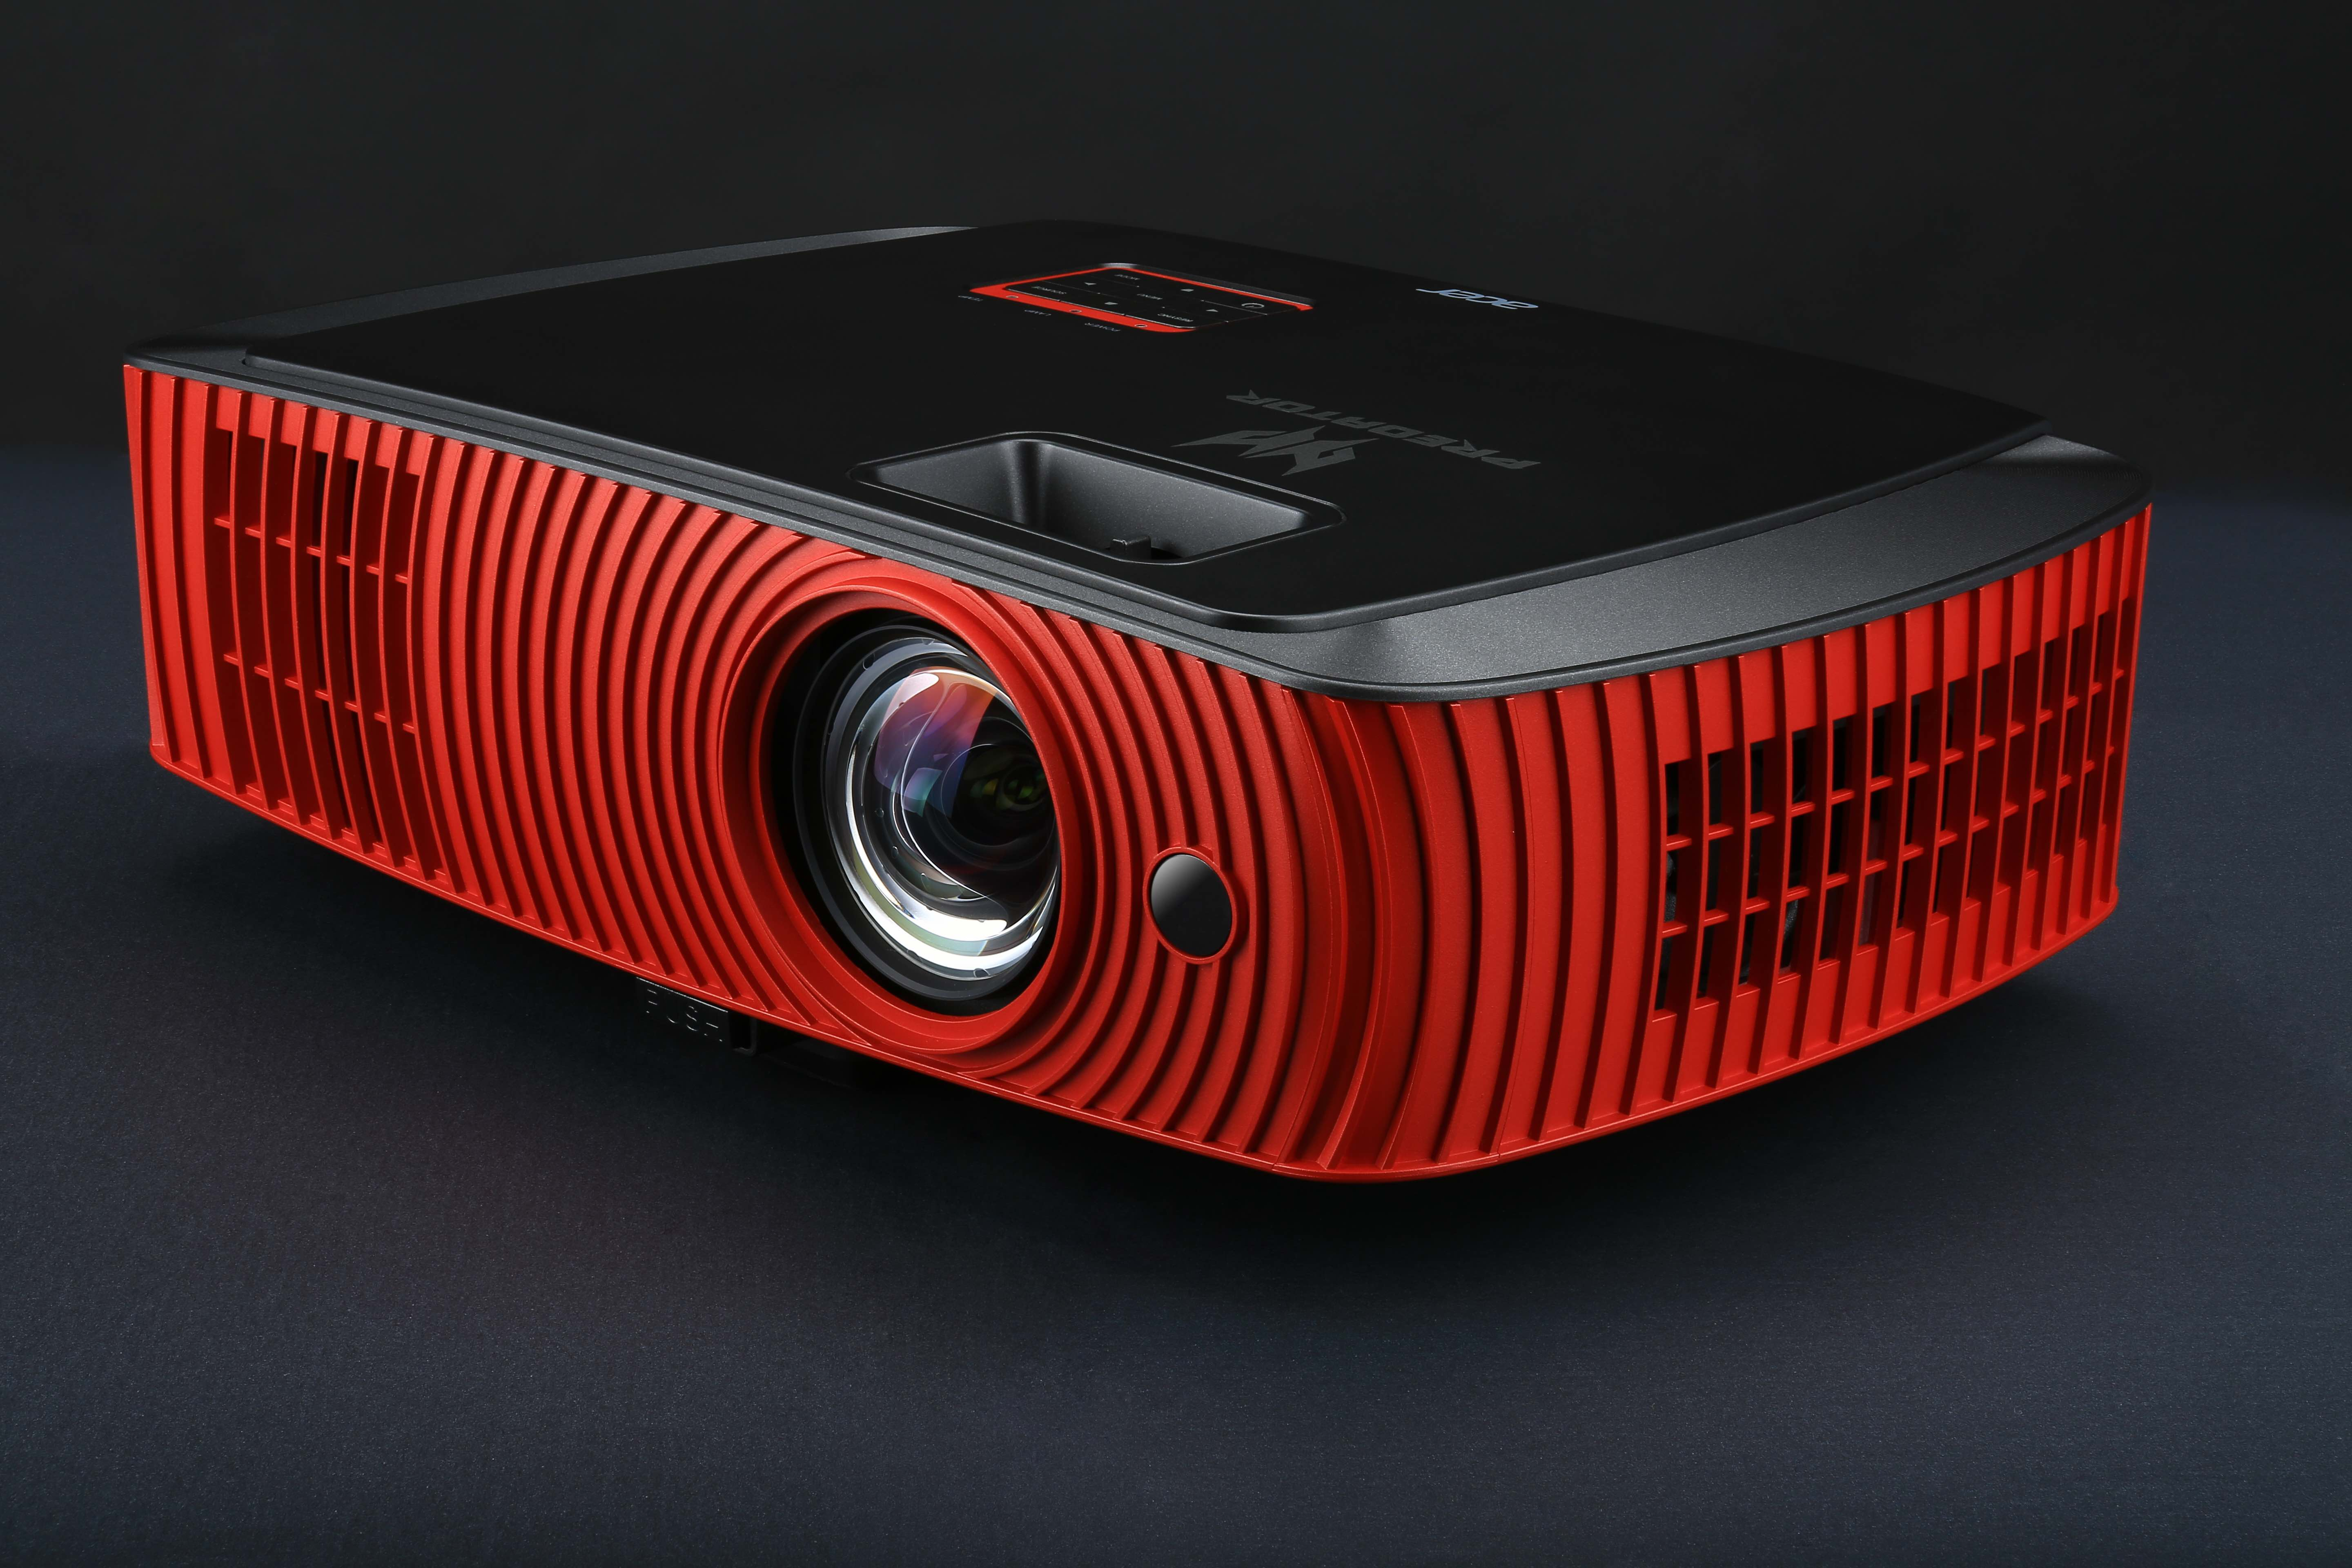 We review the awesome Predator Z650 Gaming Projector